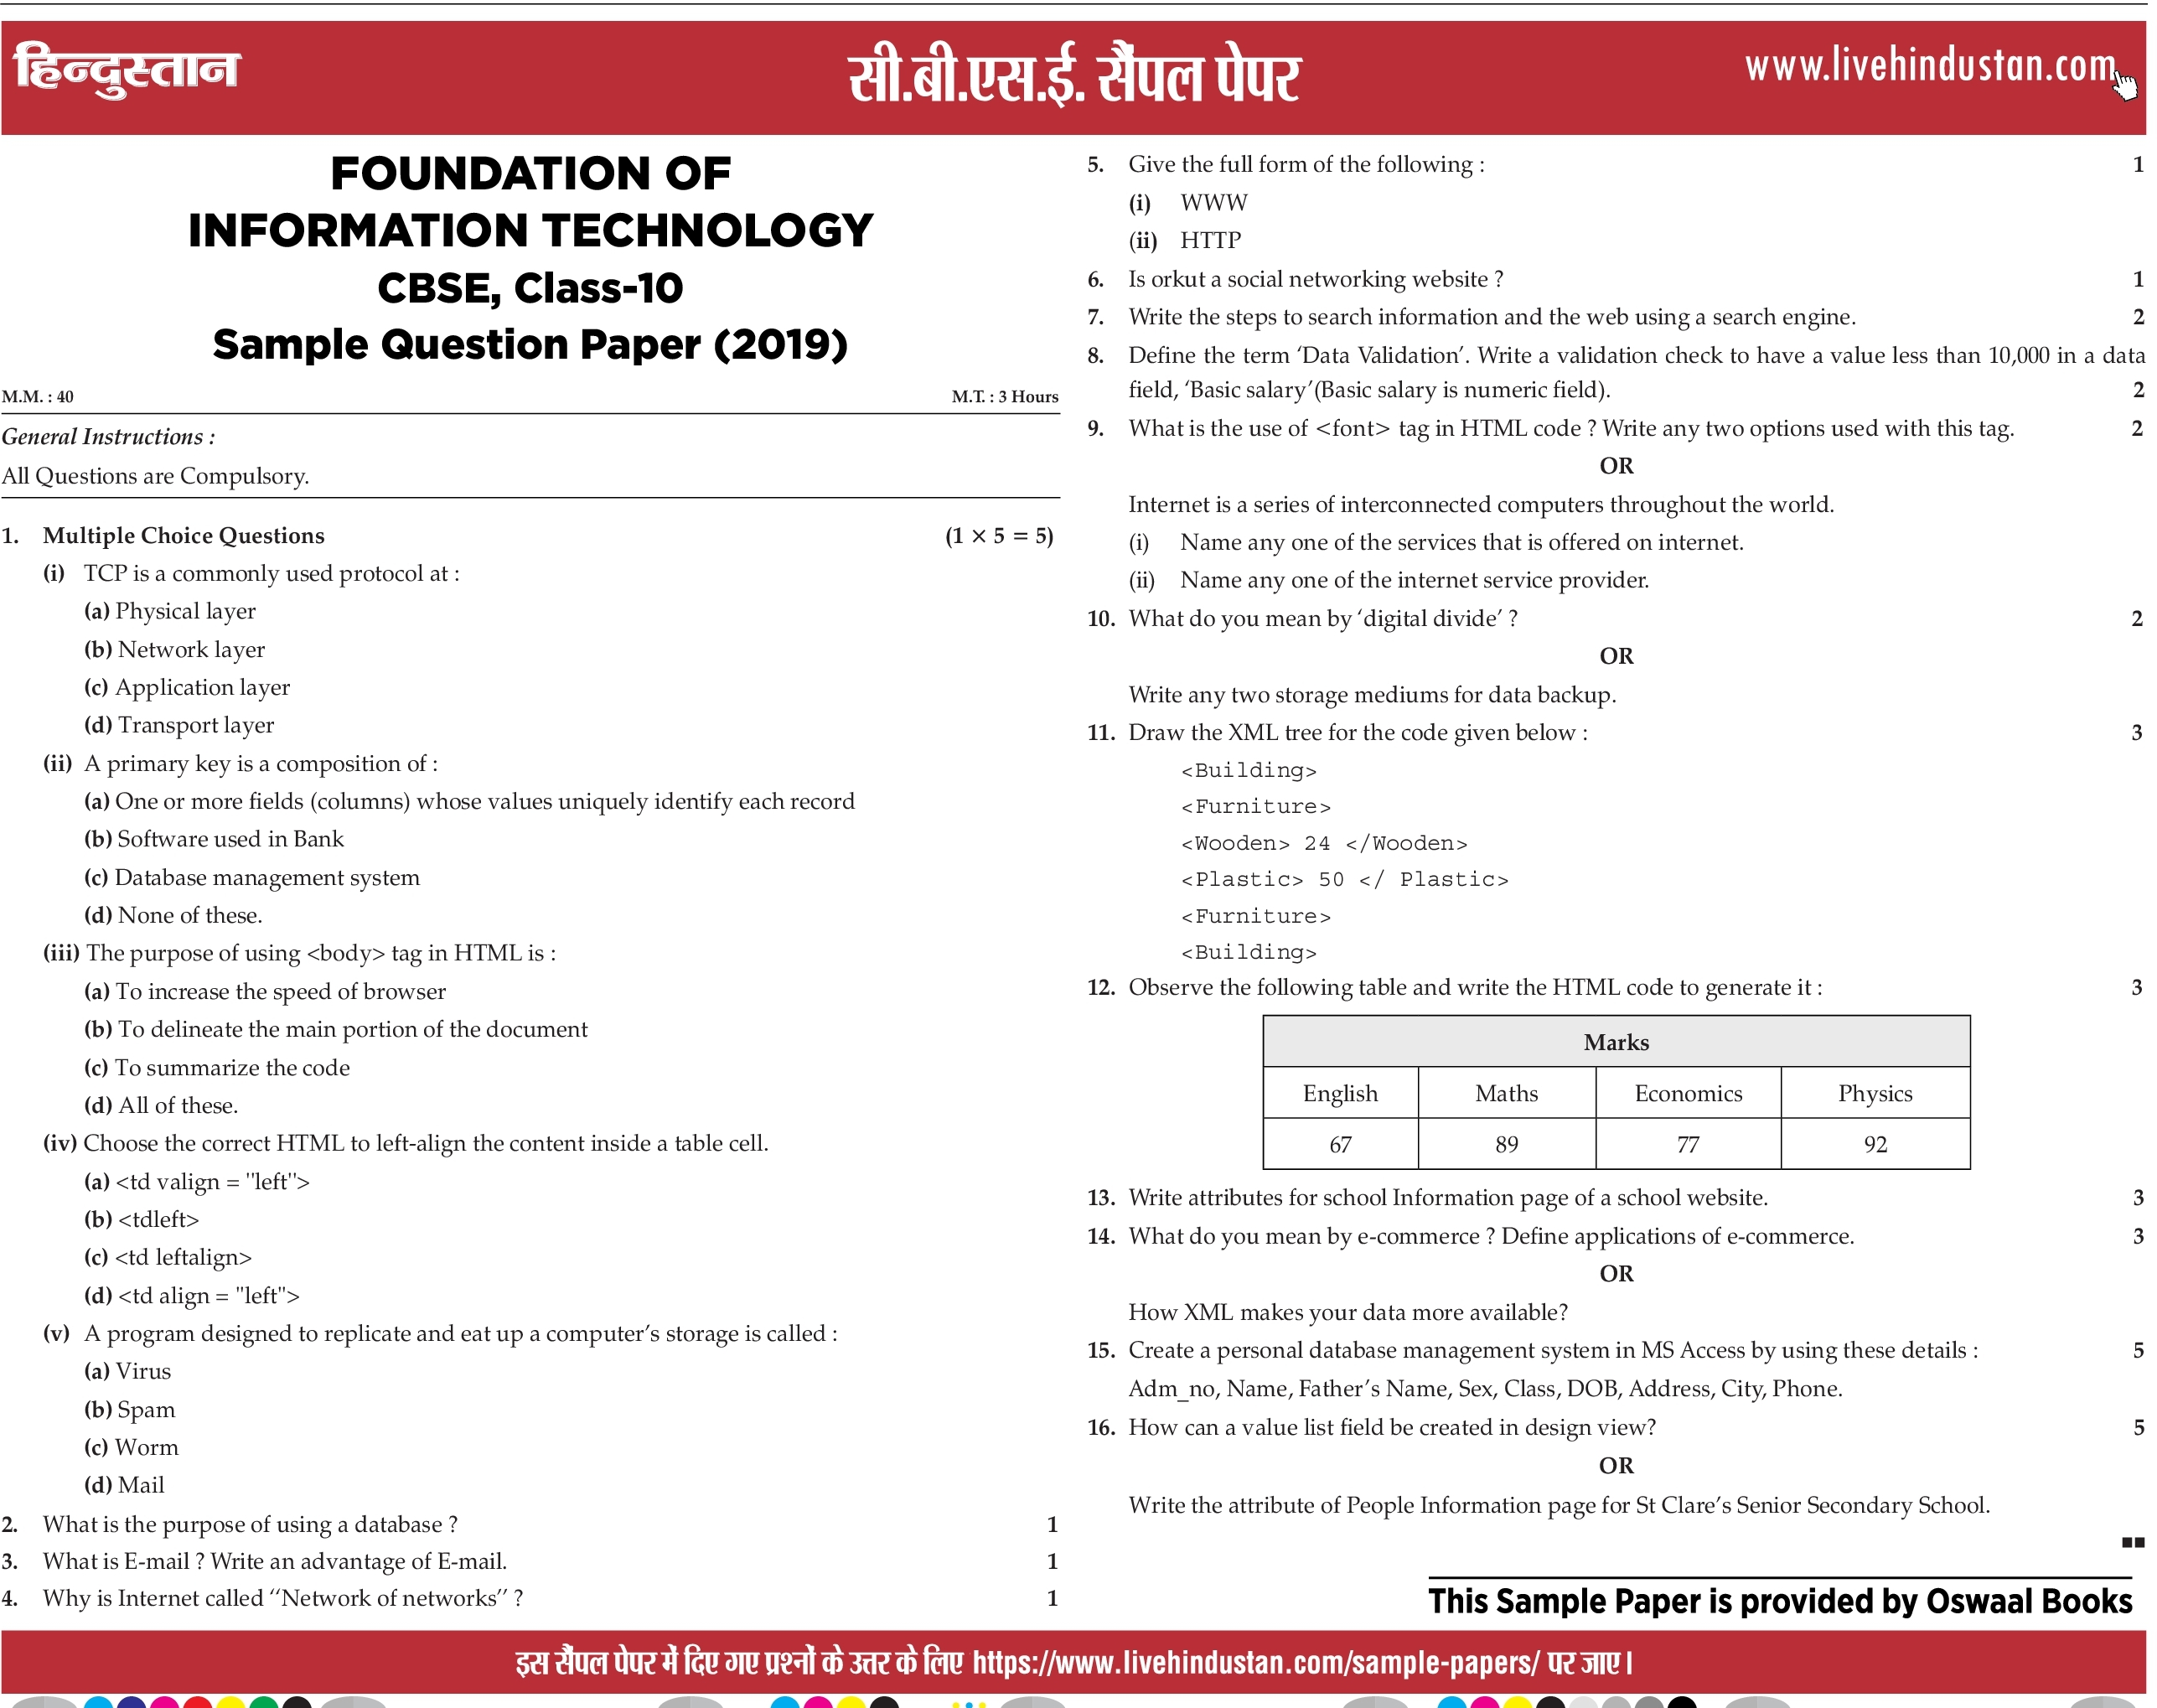 CBSE Board Model Papers 2020 Class 10th 12th Sample Papers Subject